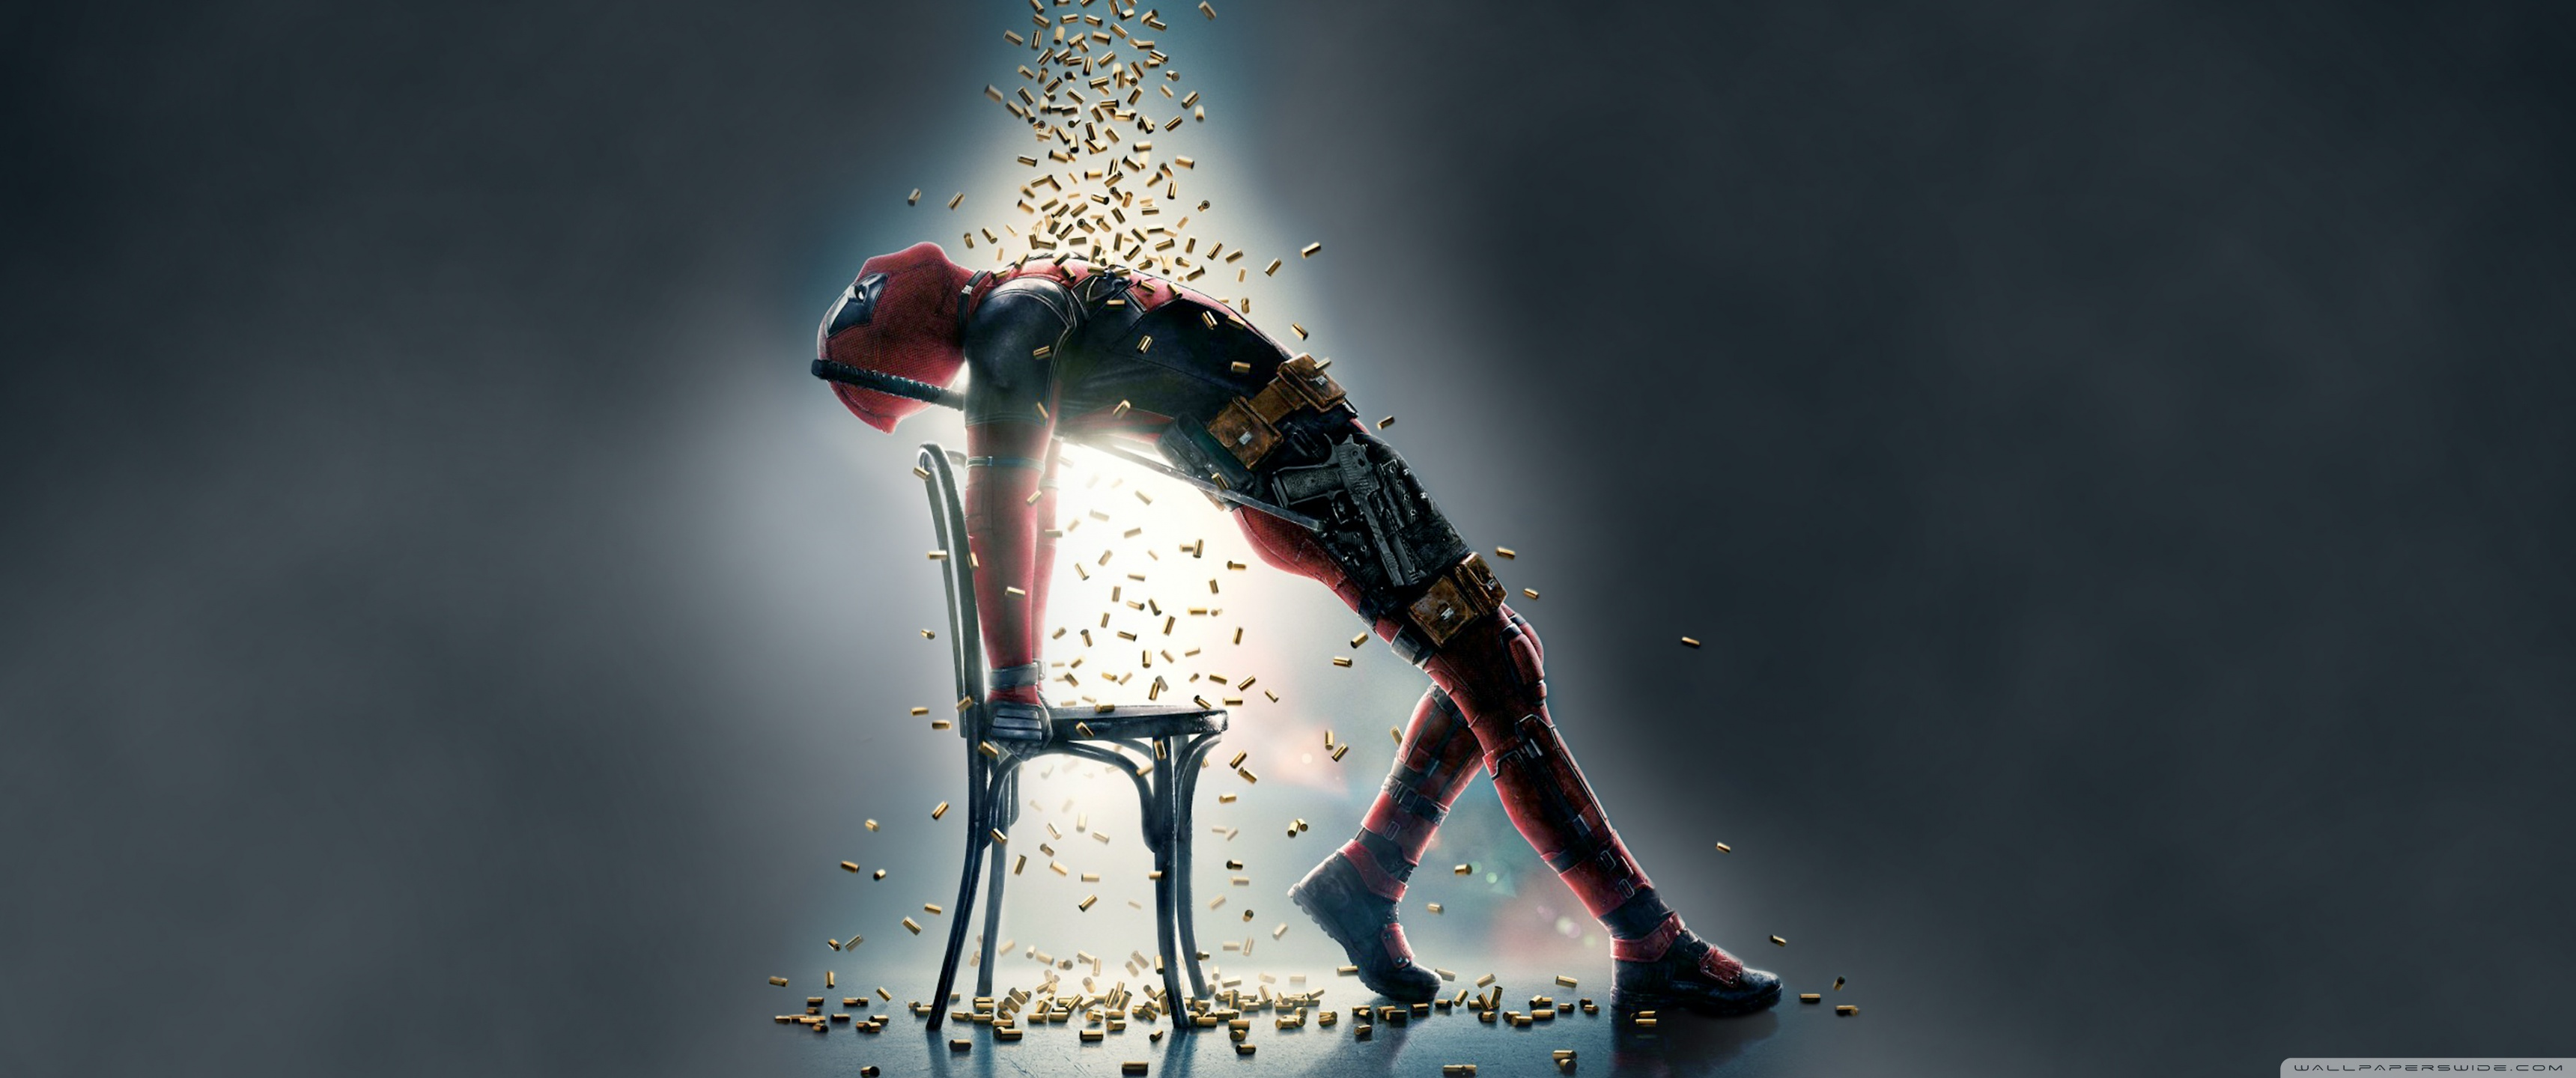 Deadpool 2 Bullets        4K HD Desktop Wallpaper for 4K Ultra HD TV     UltraWide